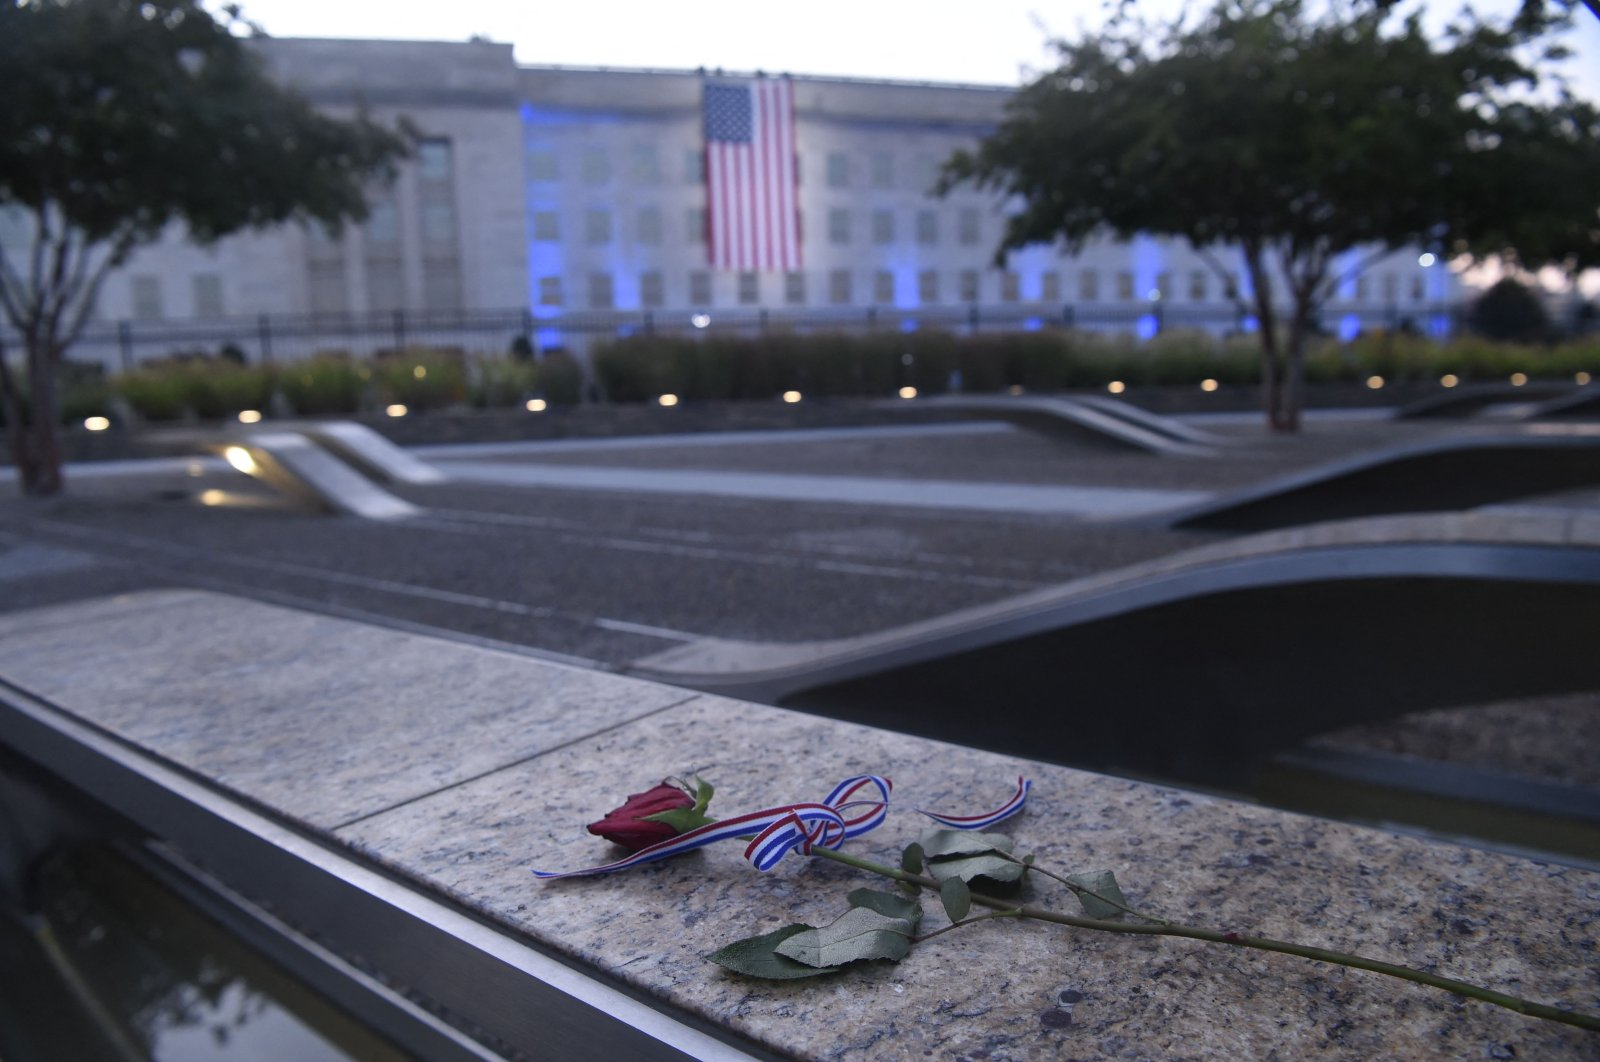 An American flag hangs from the side of the Pentagon to commemorate the 20th anniversary of the 9/11 attacks, as seen from the Pentagon 9/11 Memorial, in Washington, D.C., U.S, Sept. 11, 2021. (AFP Photo)